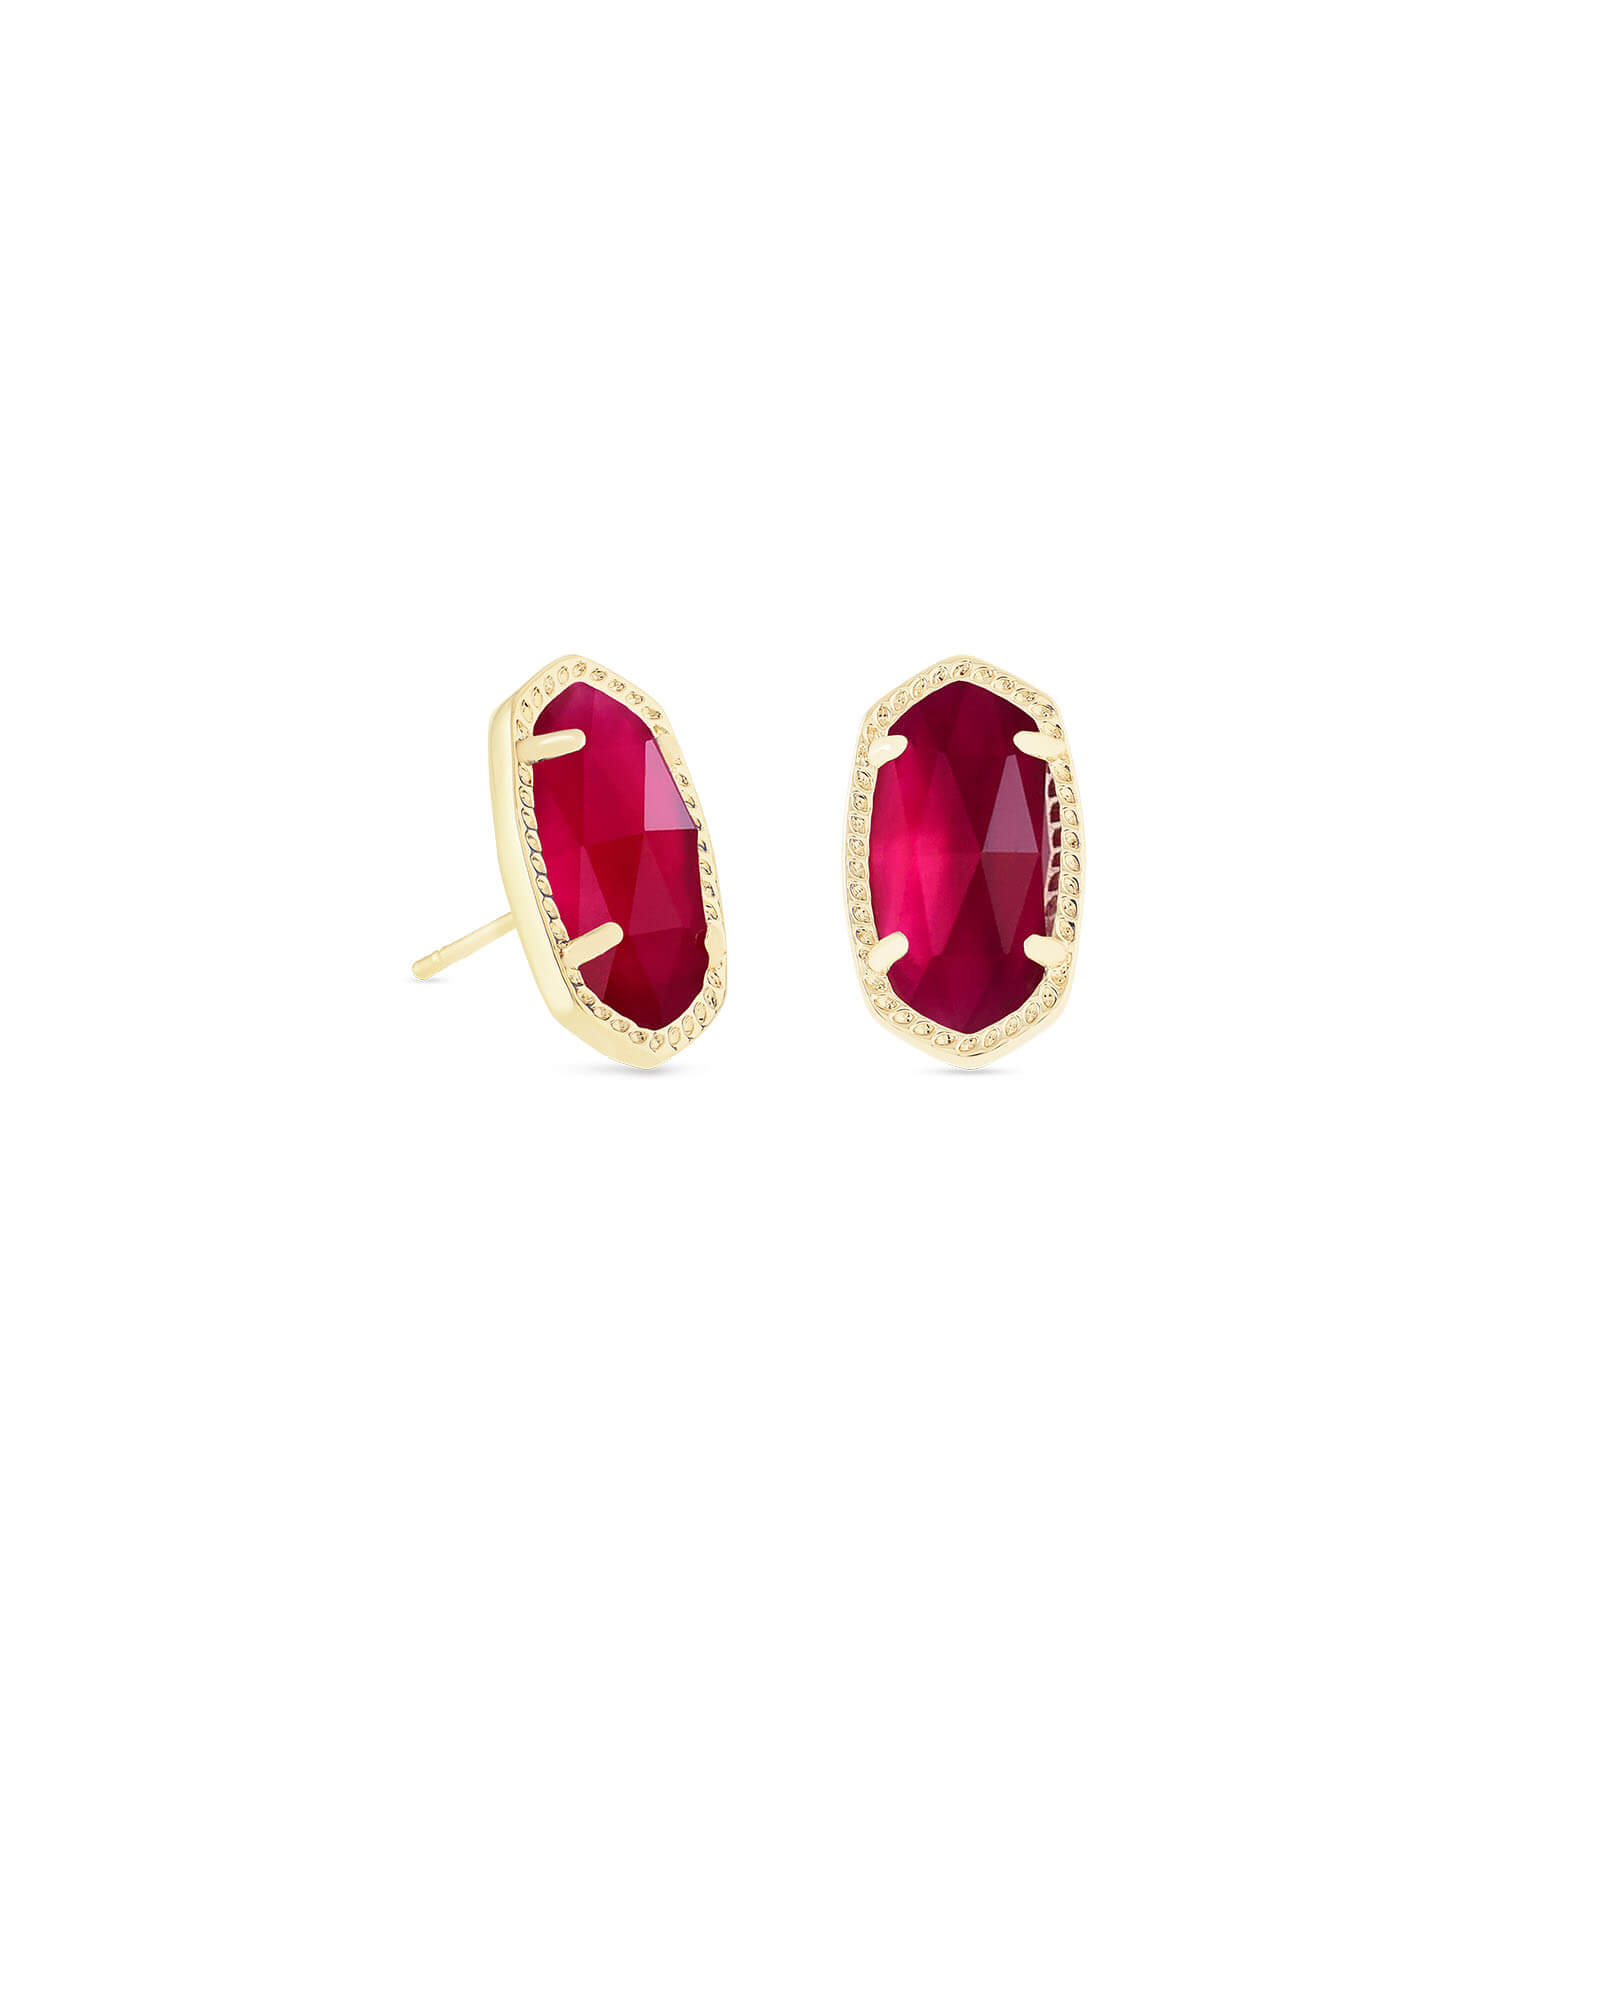 Ellie Gold Stud Earrings in Berry Illusion